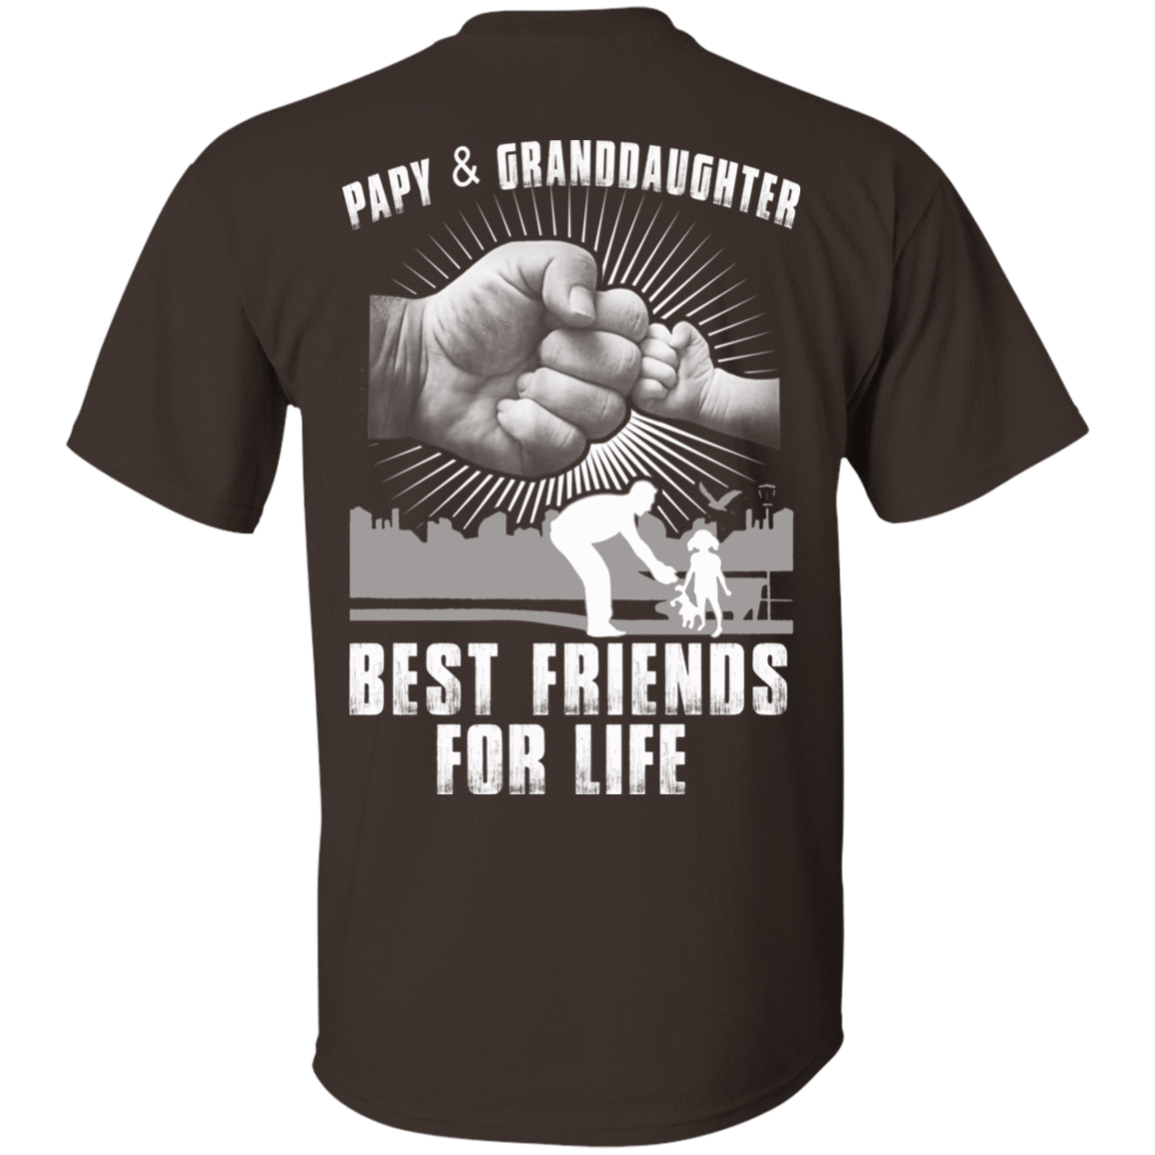 Papy And Granddaughter Best Friends For Life 22-2283-71996227-12087 - Tee Ript